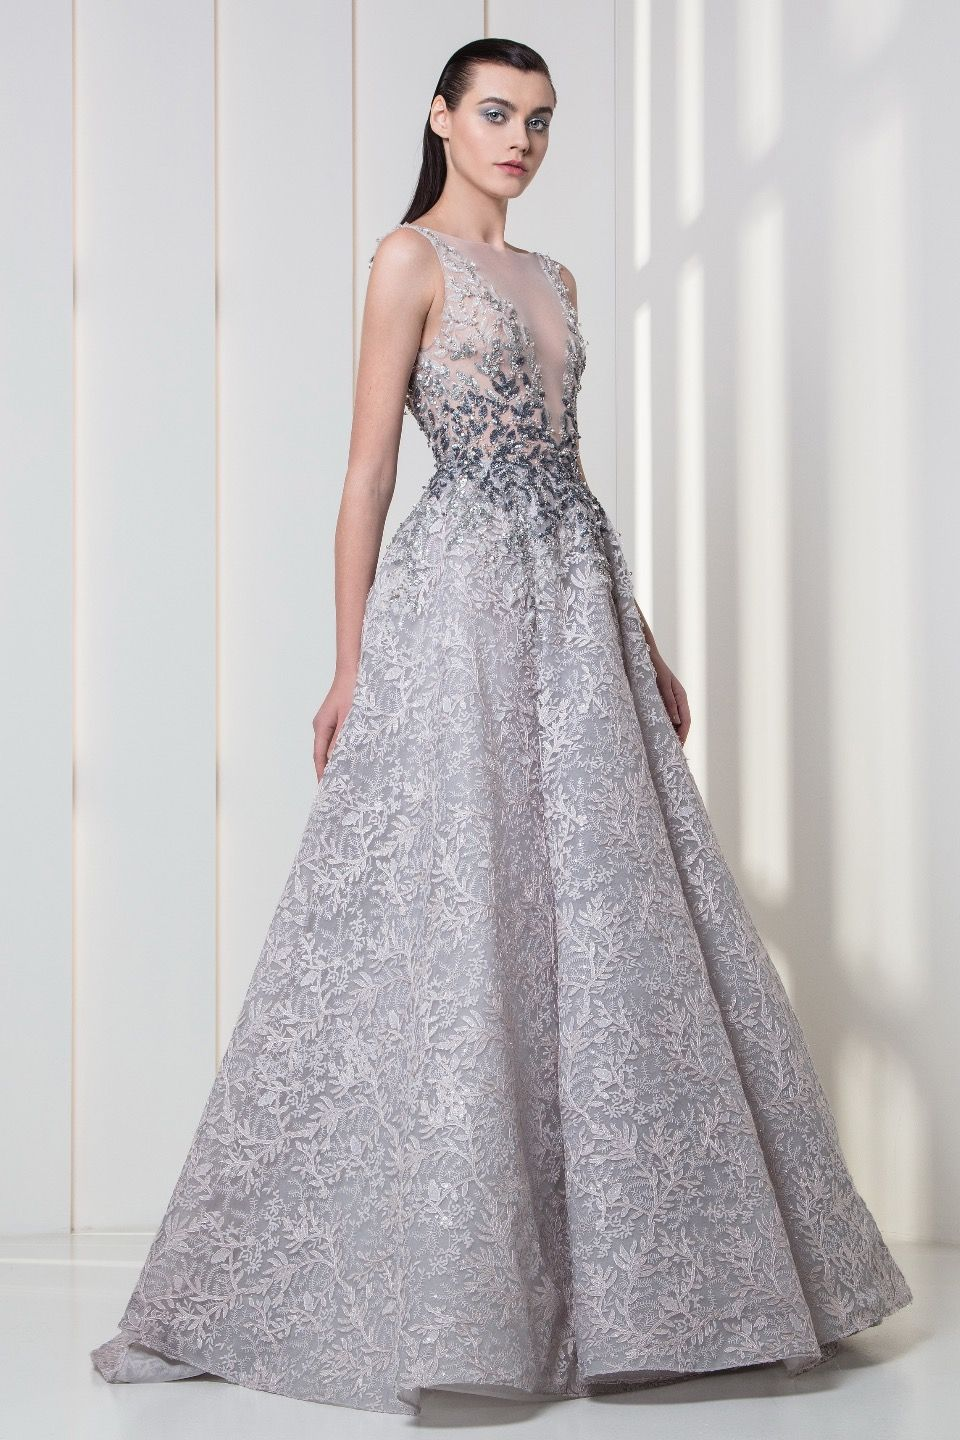 Tony ward fallwinter rtw collection tony ward collections